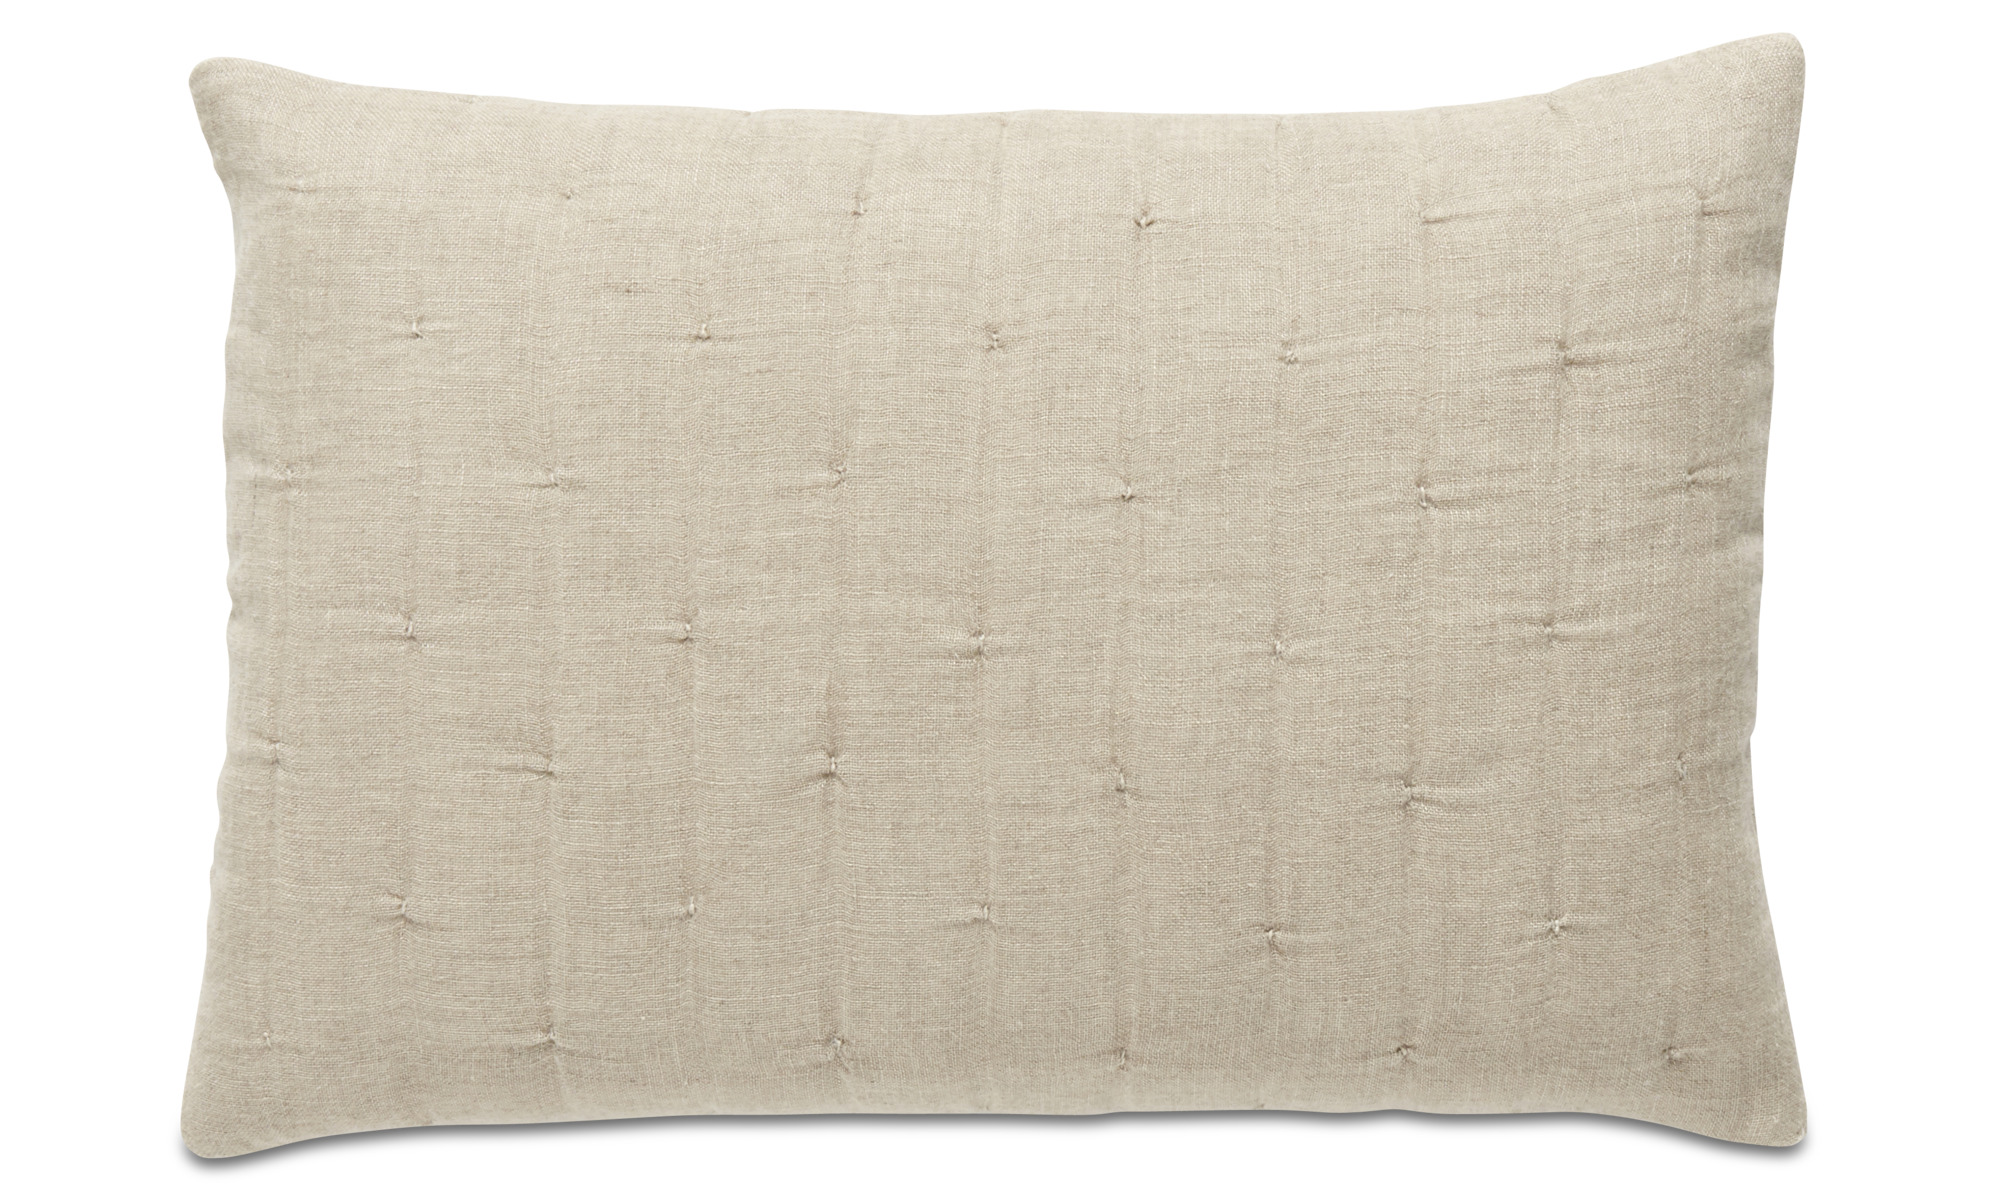 Cushions - REMS cushion - Beige - Fabric